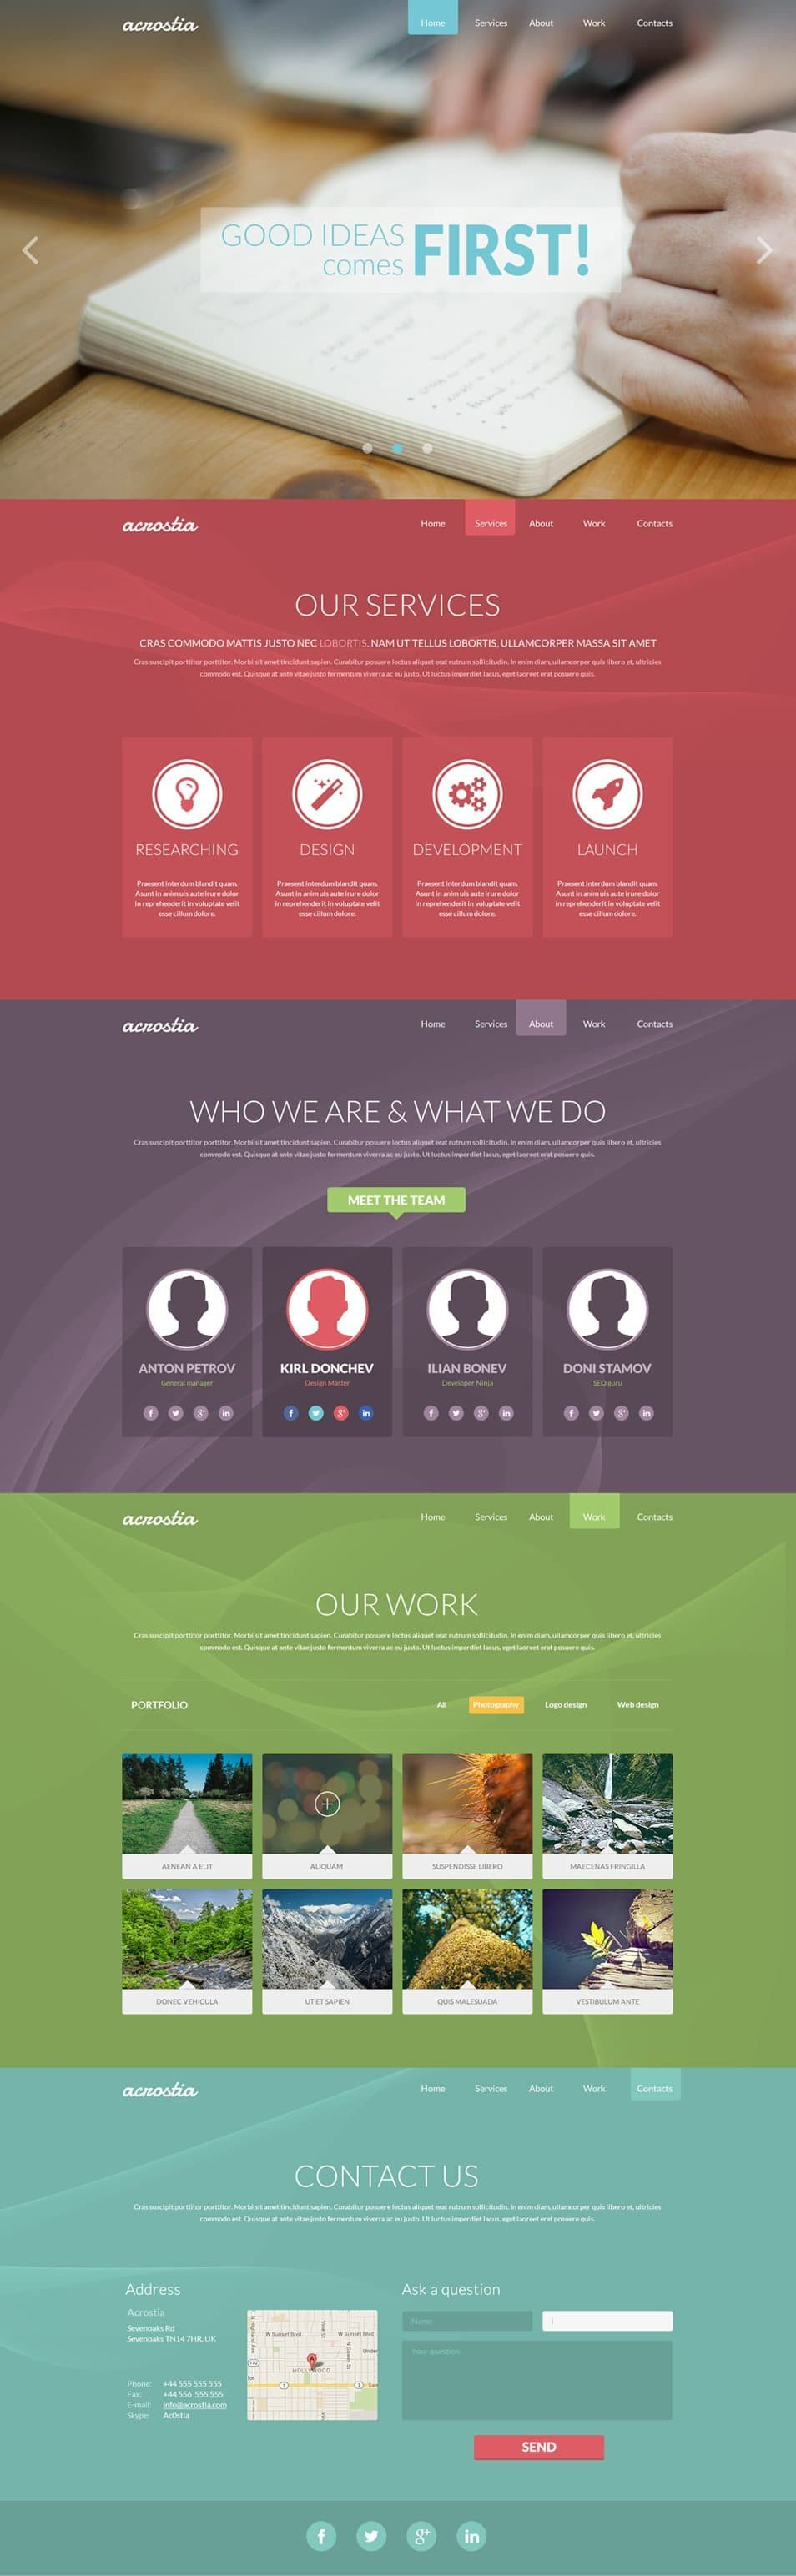 One Page Template Free Free Single Page Website Templates Psd Css Author